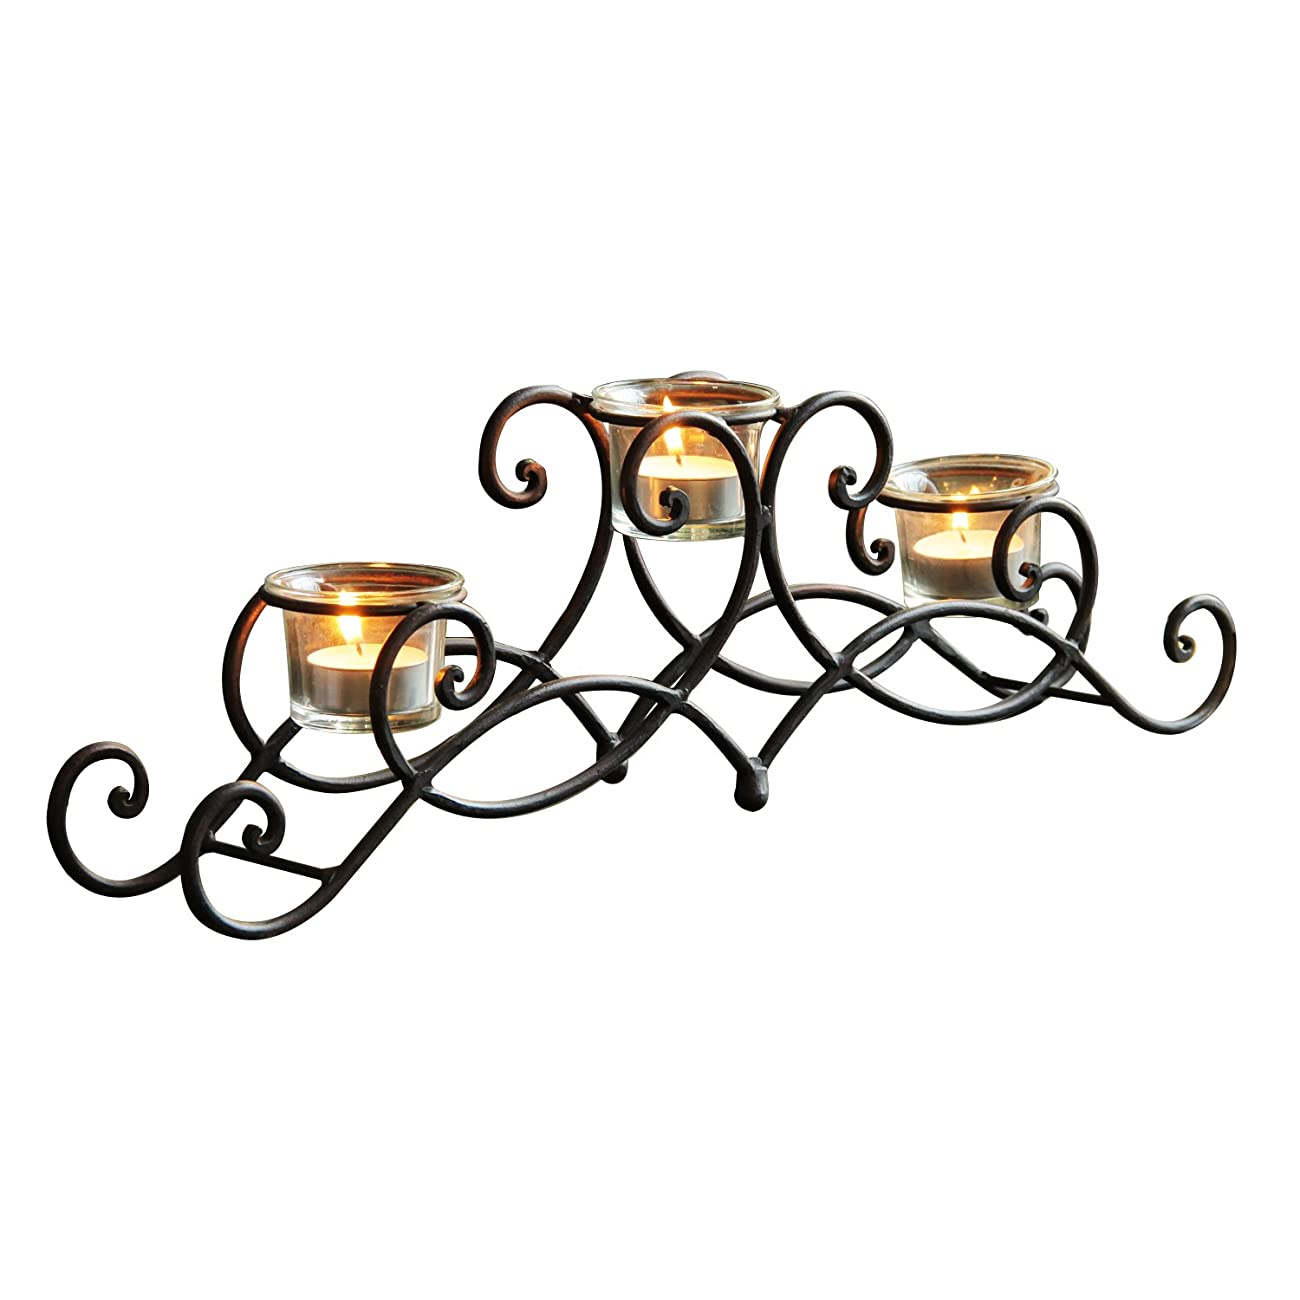 ELEGAN Black Iron Table Top Candle Holder, Holds 3 Tea lights 0